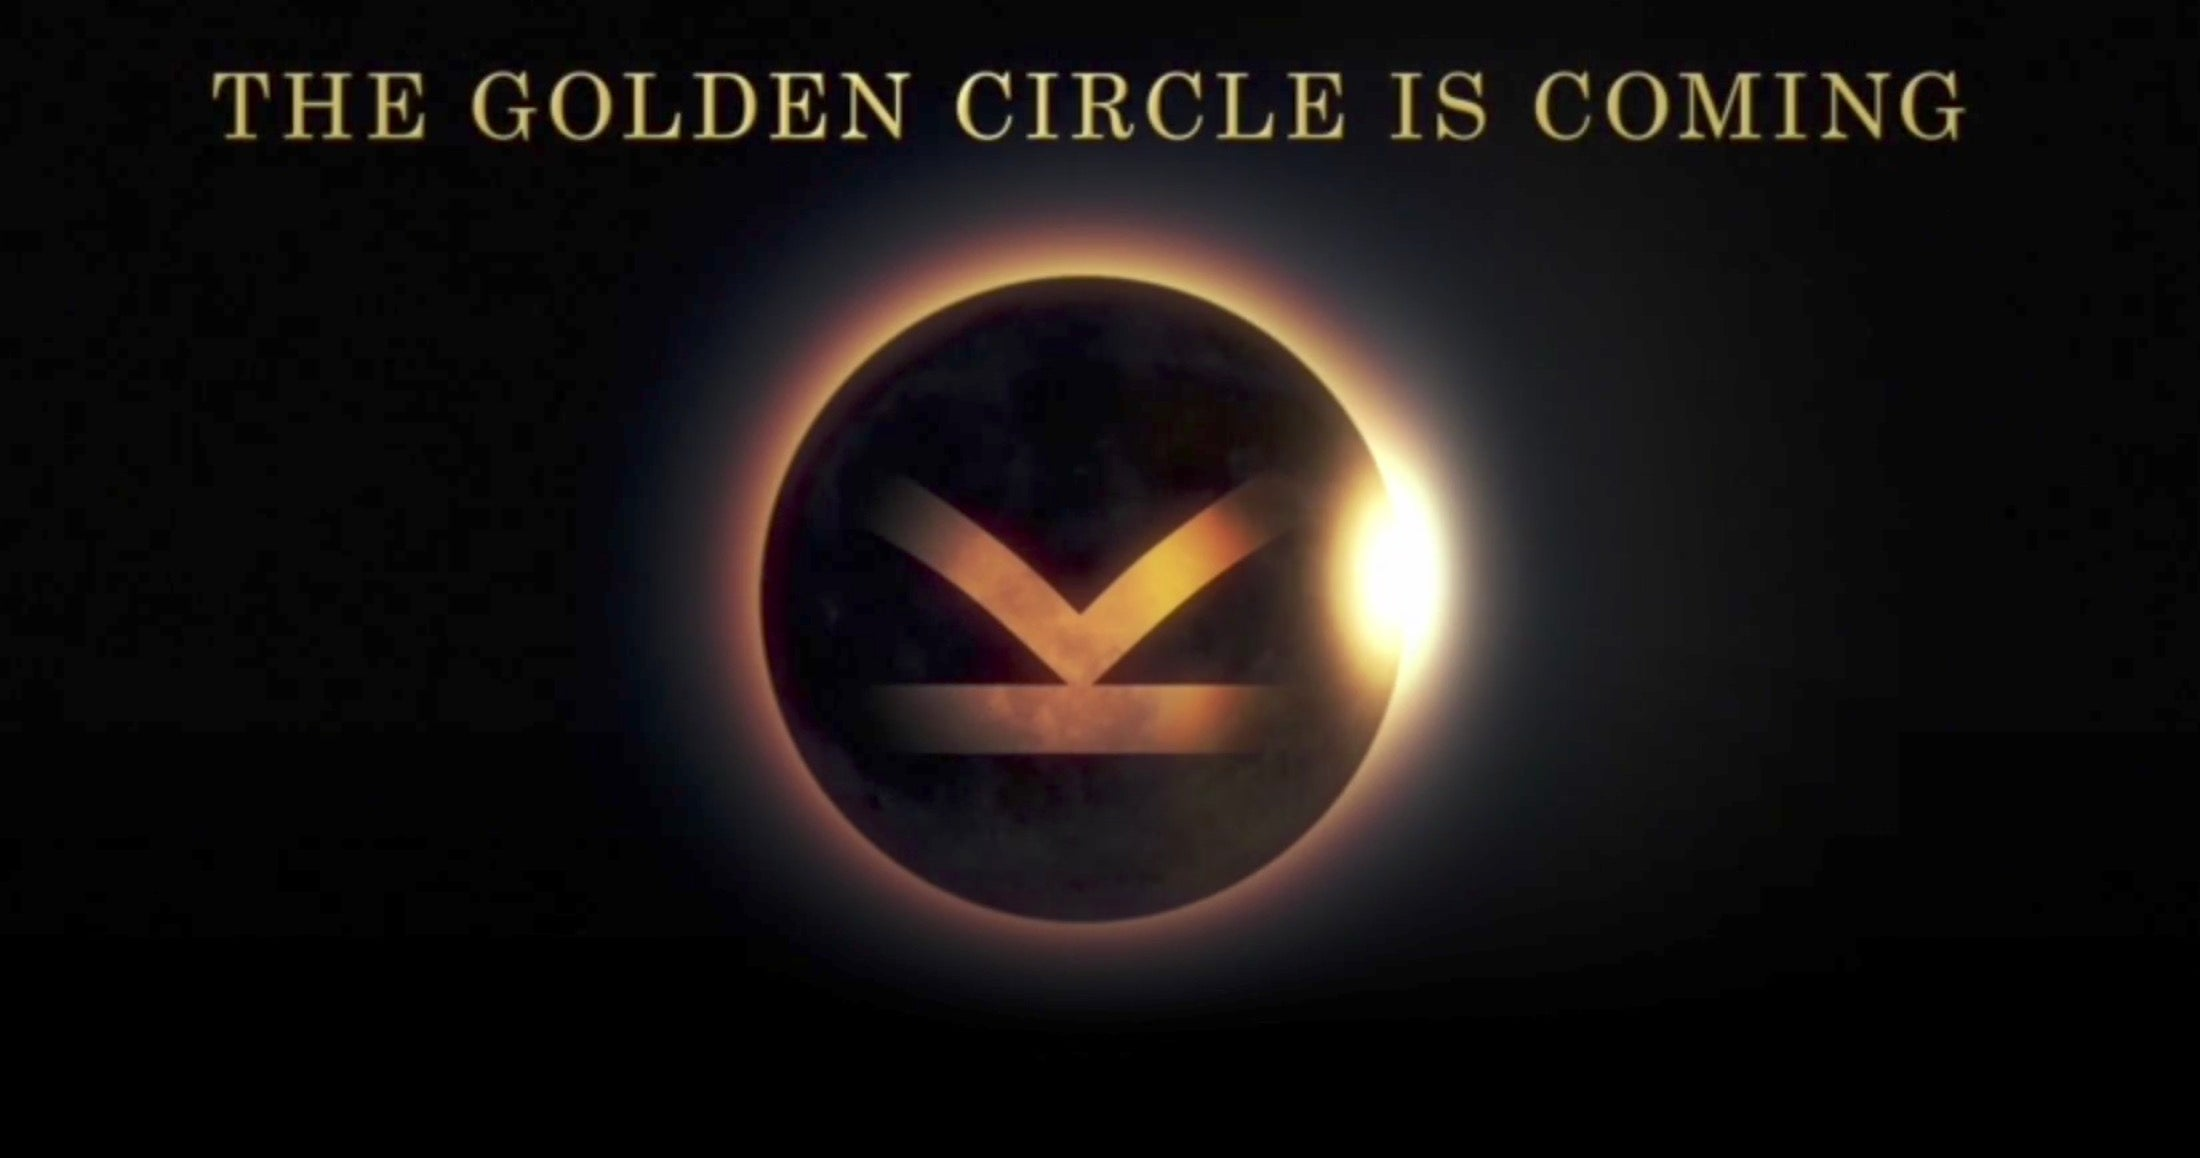 The Upcoming Eclipse Is Really Just A Huge Promo For Kingsman: The Golden Circle